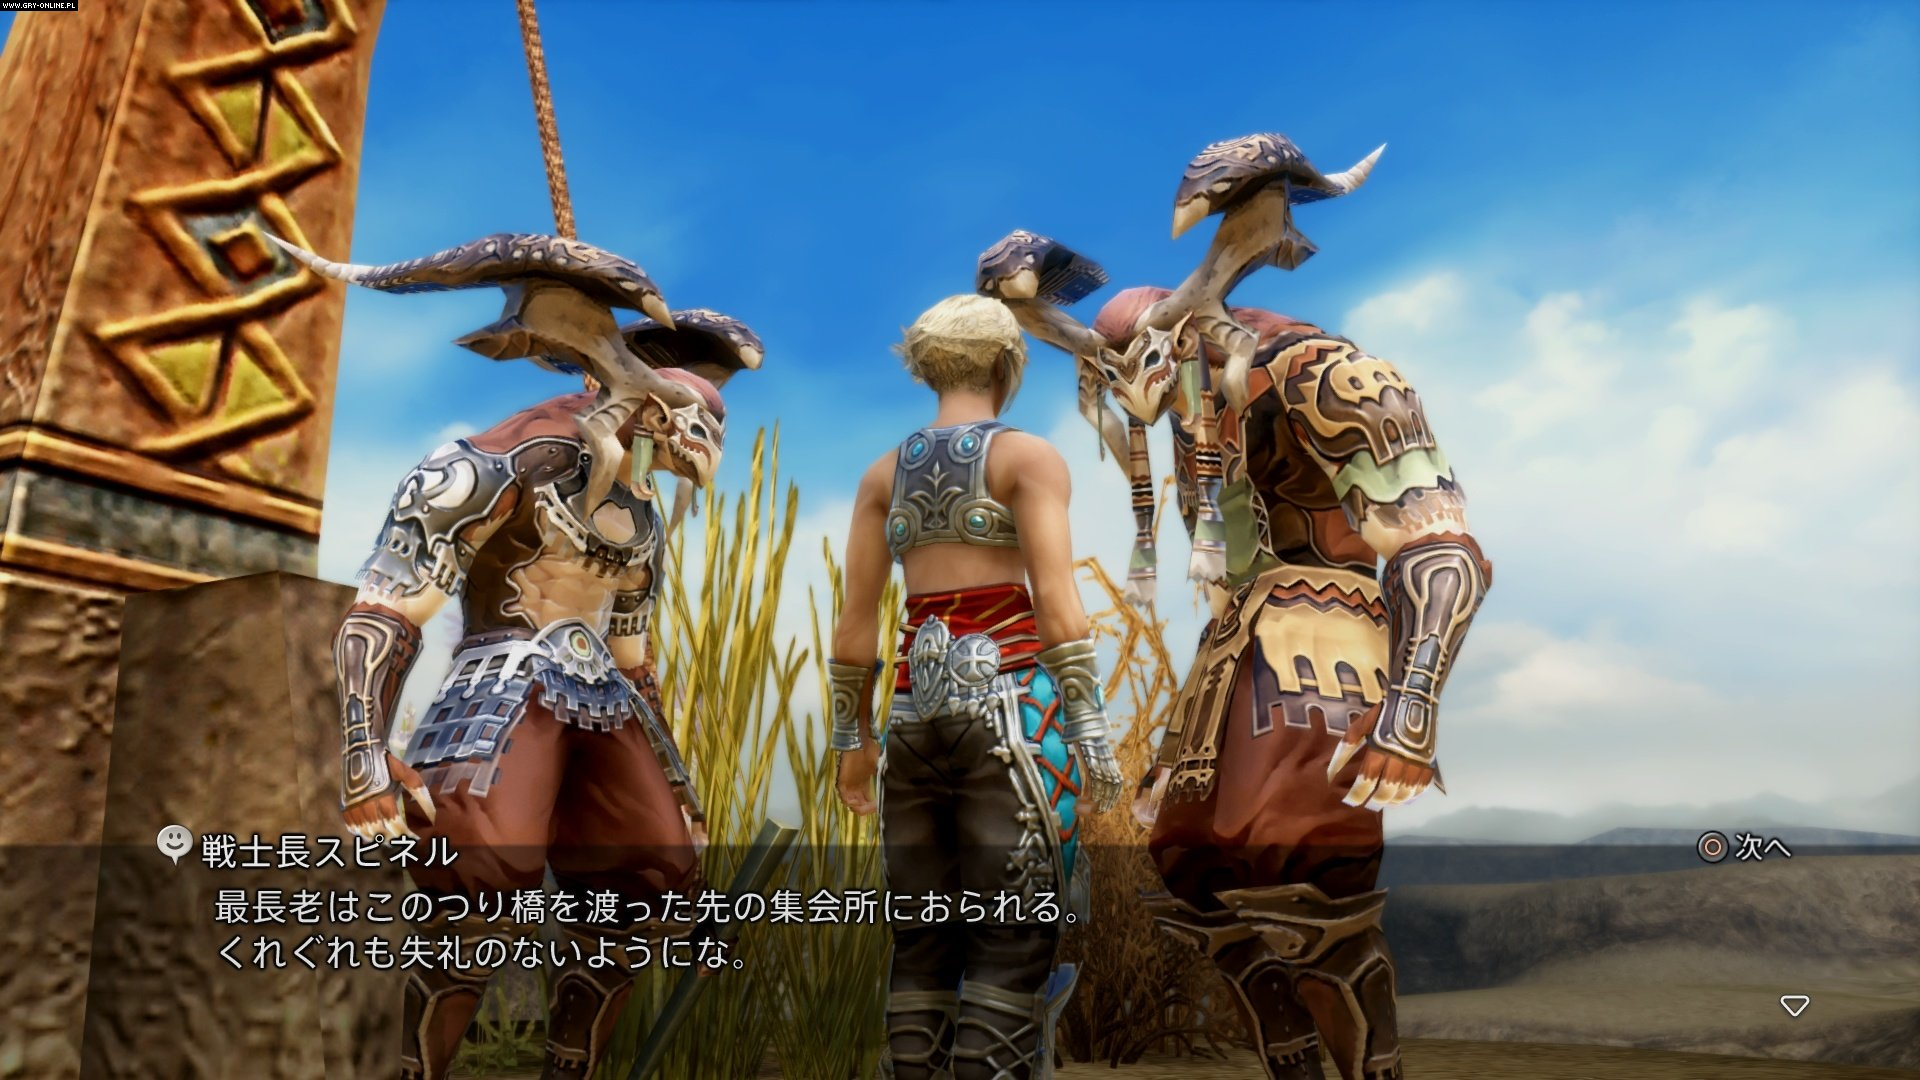 Final Fantasy XII: The Zodiac Age PS4 Gry Screen 21/71, Square-Enix / Eidos